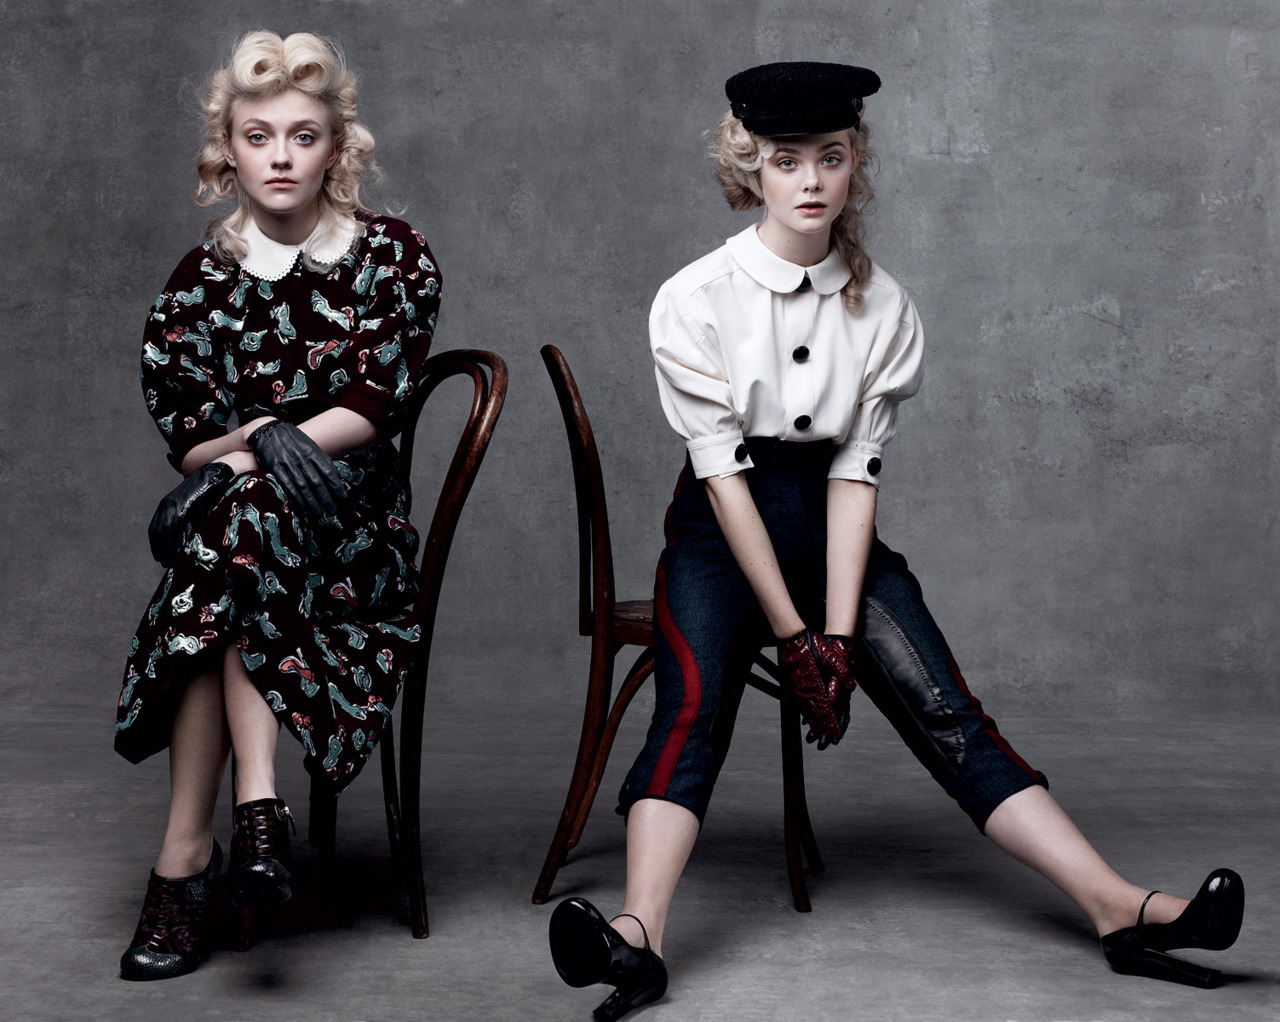 suicideblonde:  Dakota and Elle Fanning photographed by Craig McDean for Vogue, August 2011